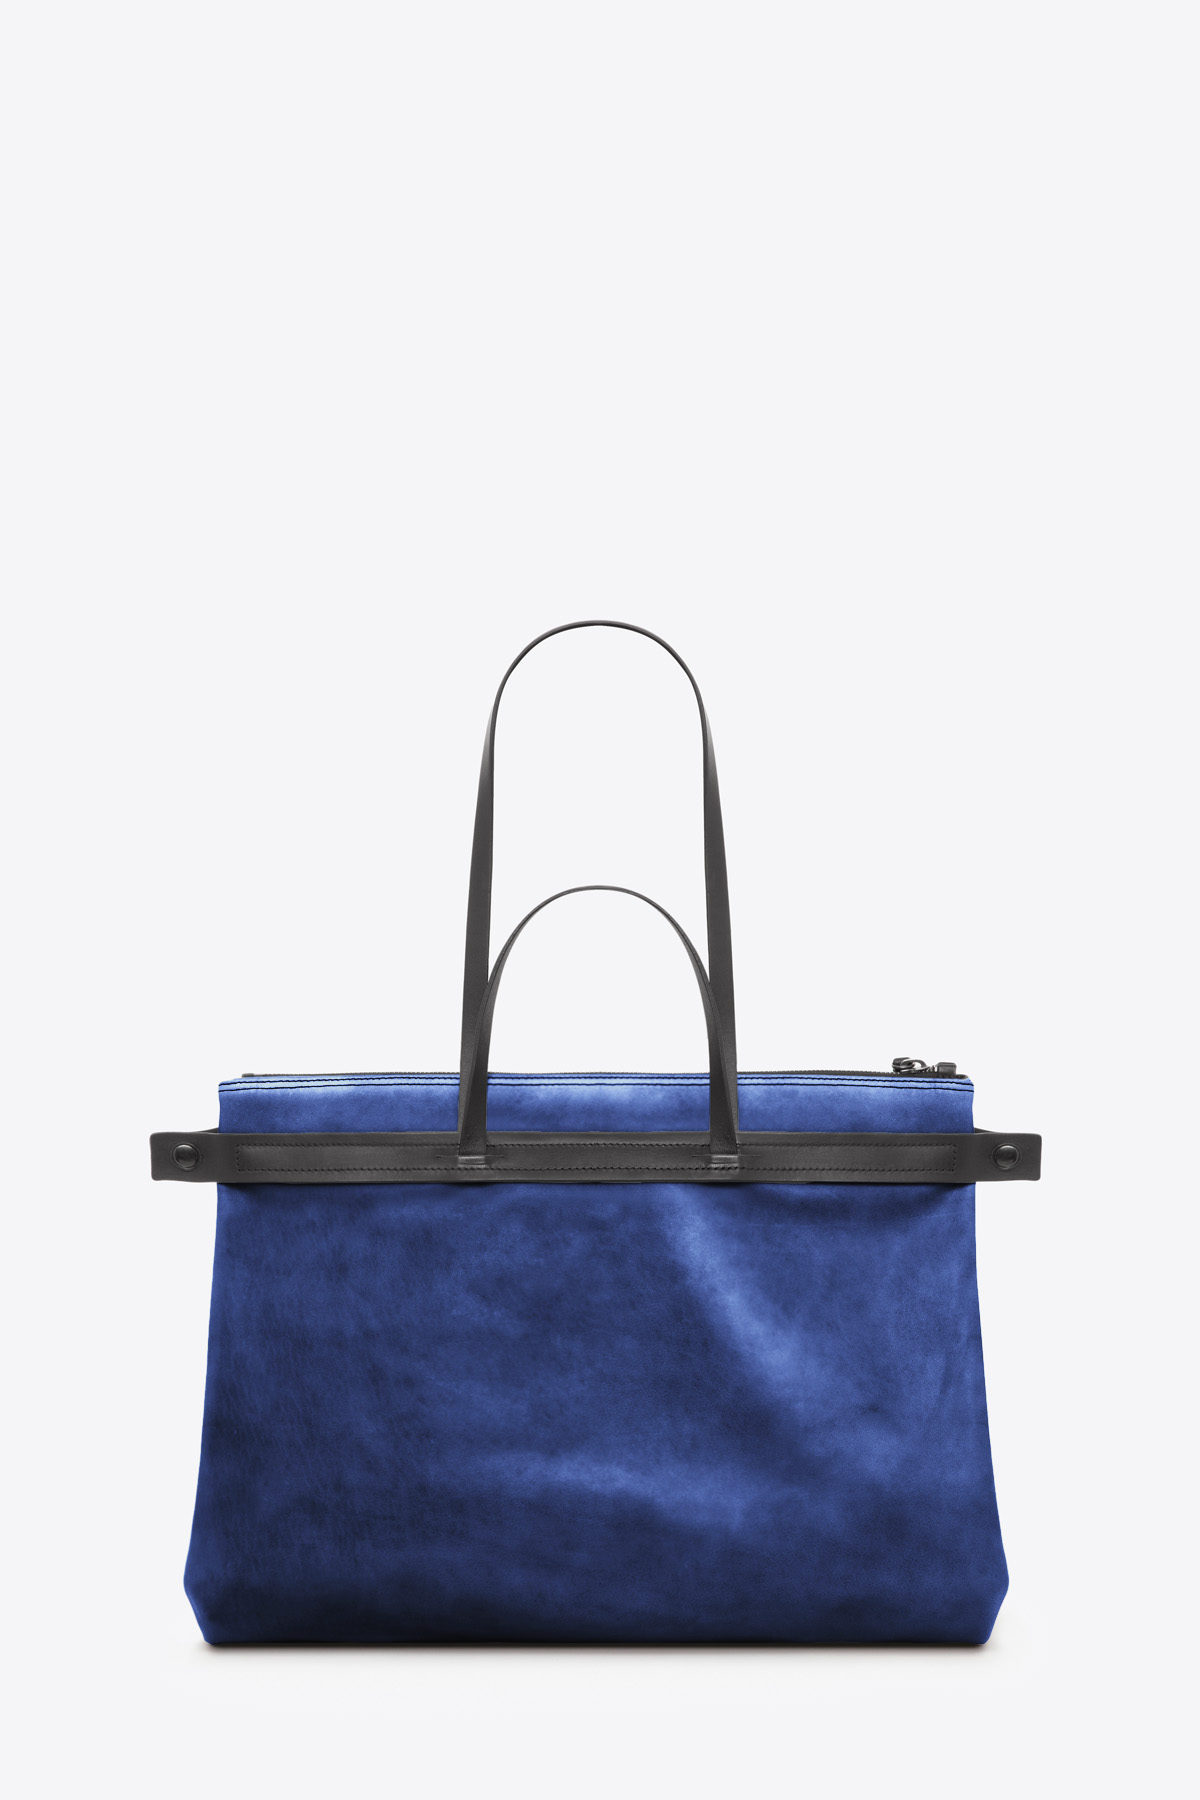 dclr007l-tote-a20-royalblue-back